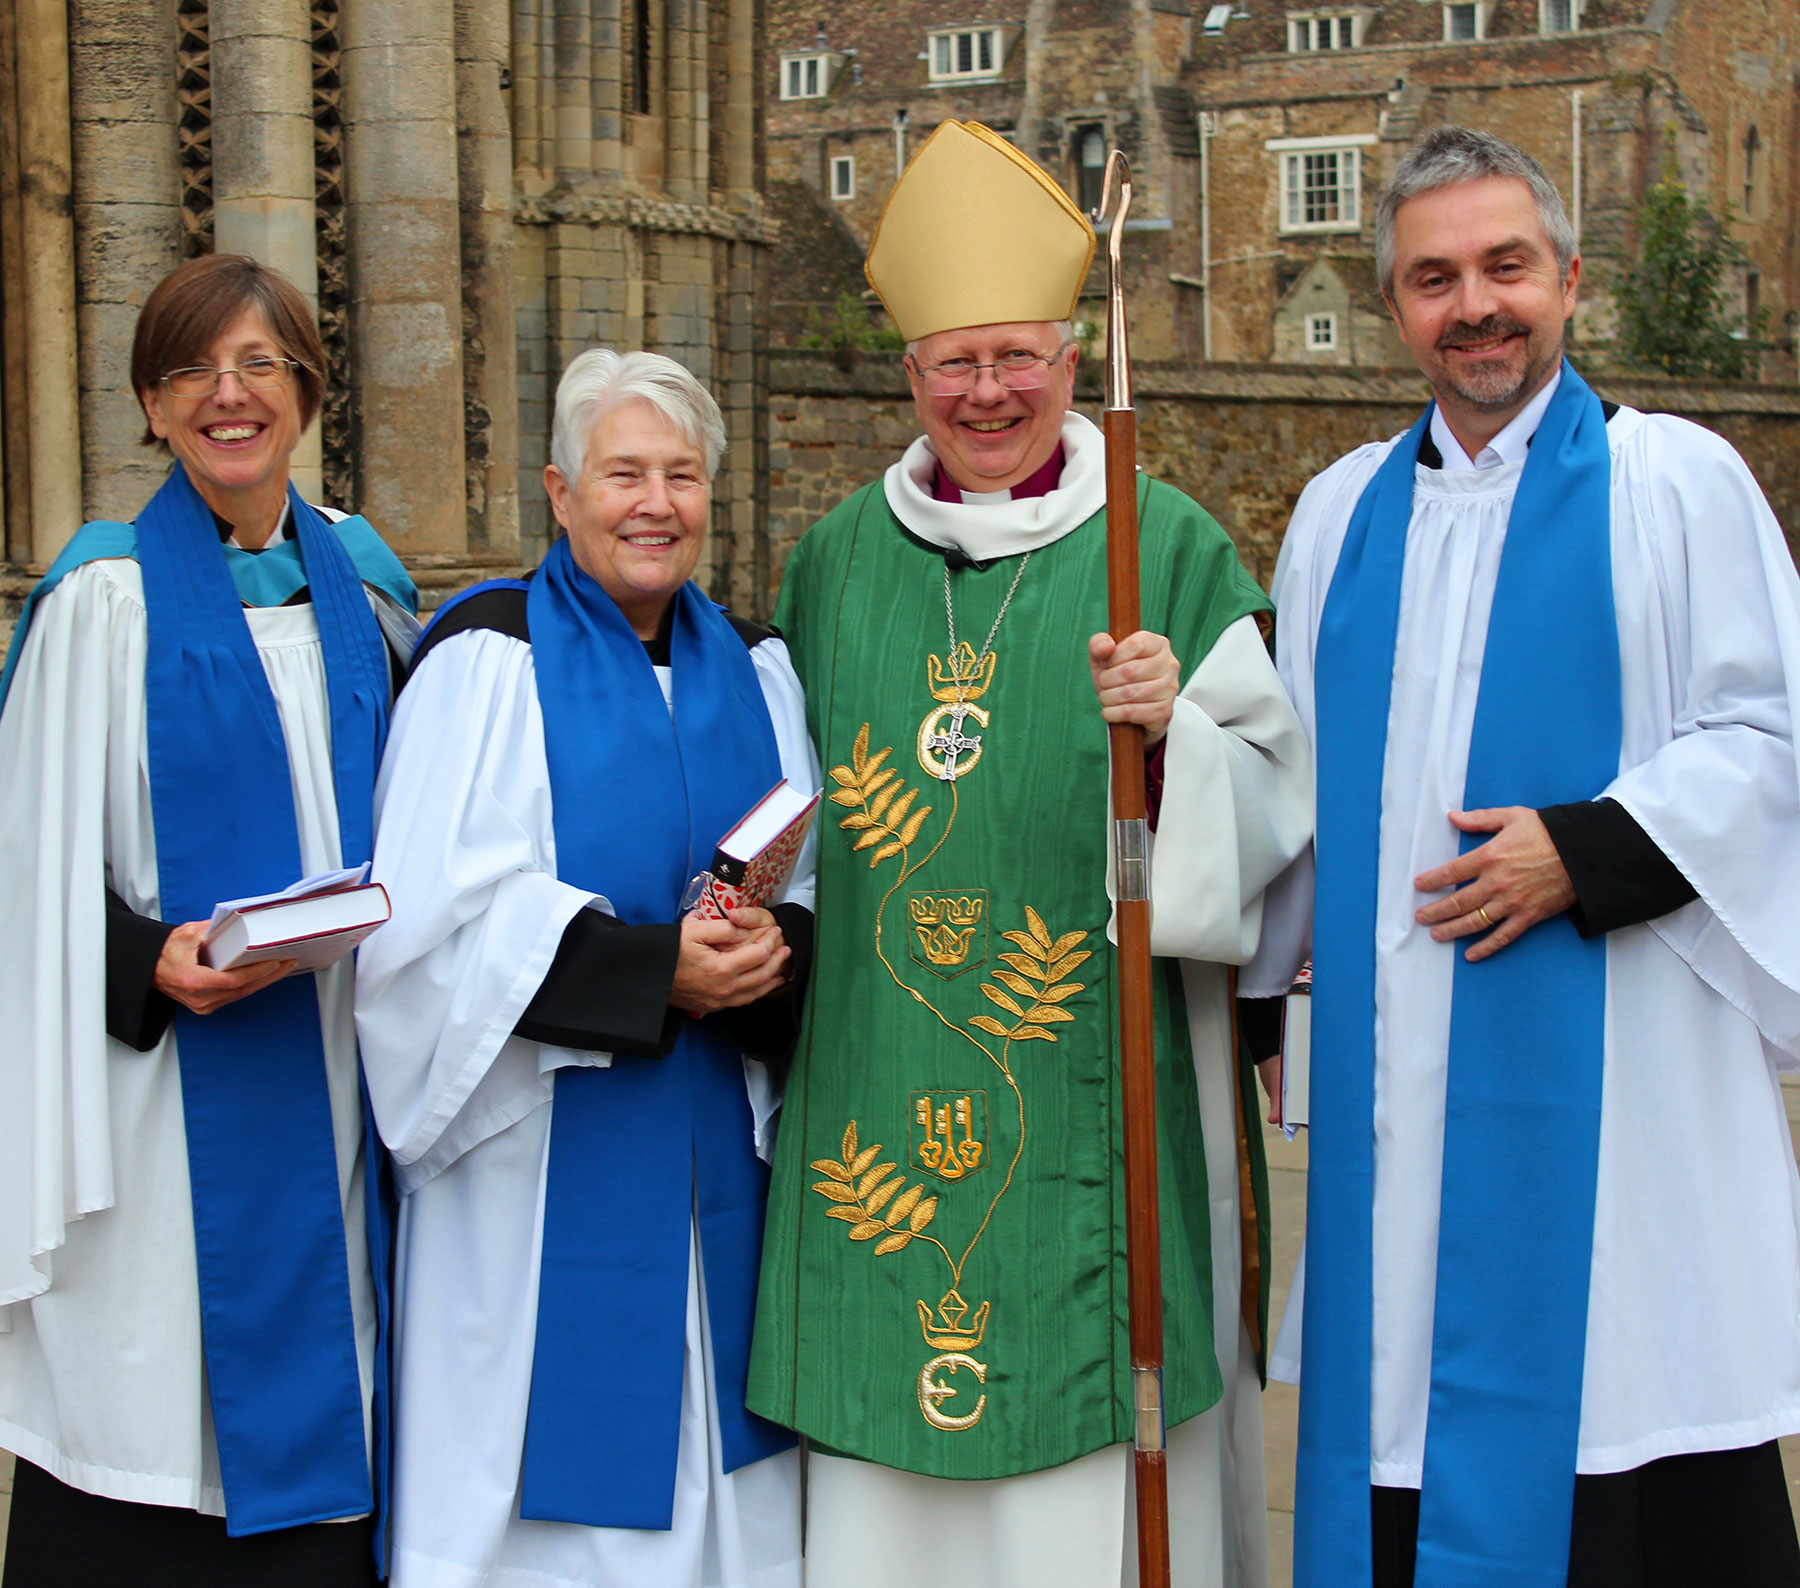 Bishop of Huntingdon sermon - Admission and Licensing Services for LLMs